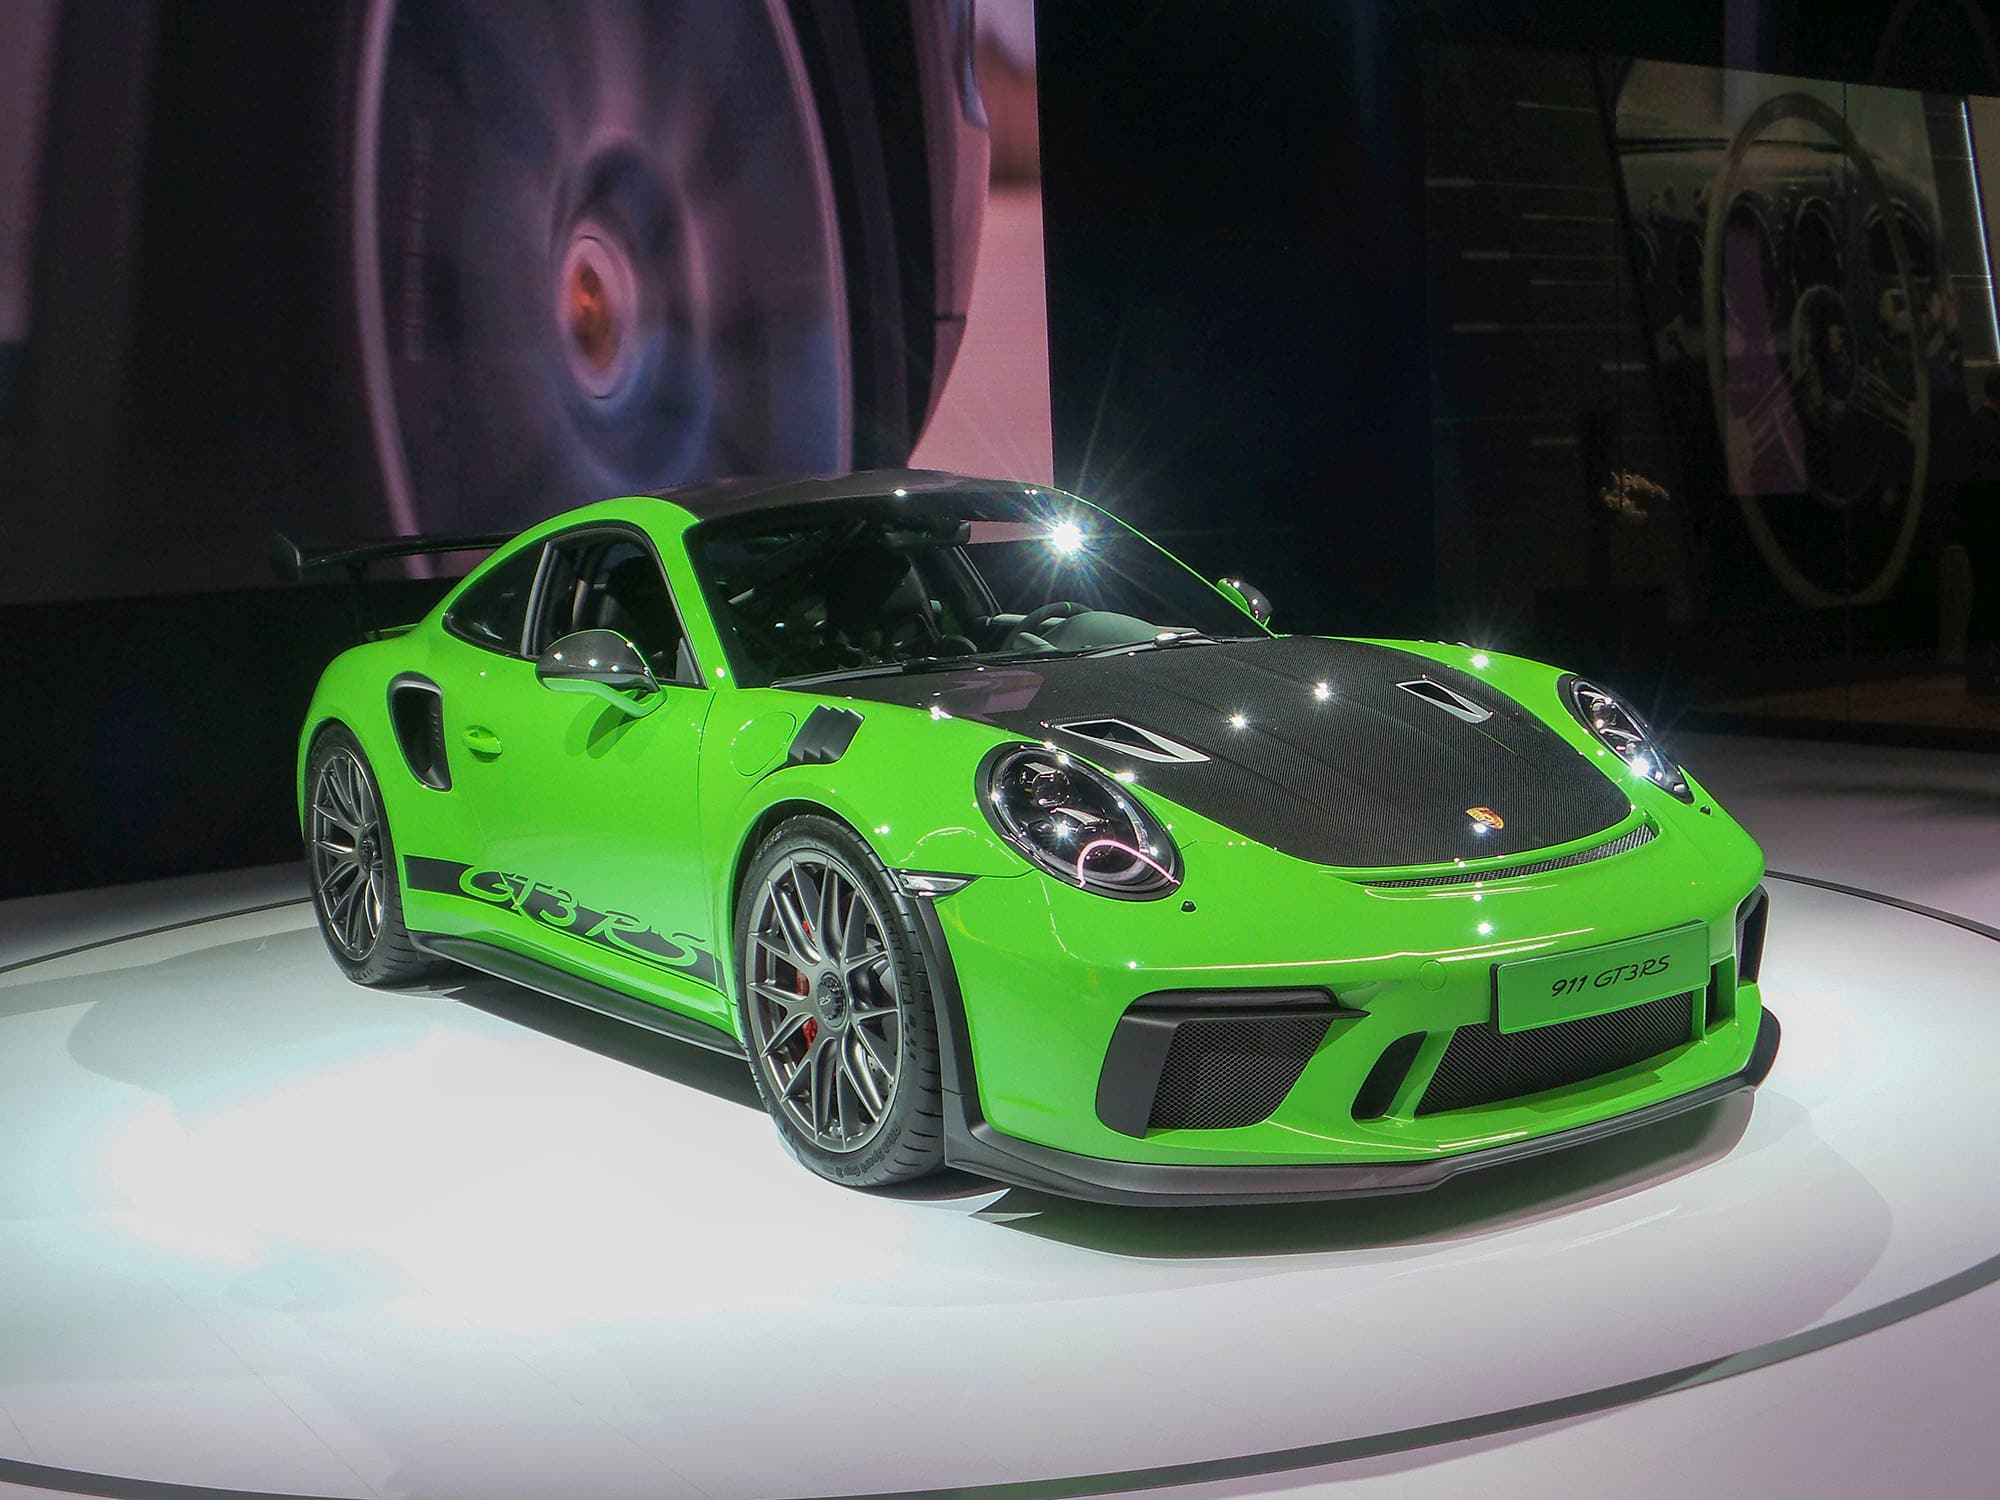 2019 Porsche 911 Gt3 Rs Weissach Makes Global Debut Kelley Blue Book